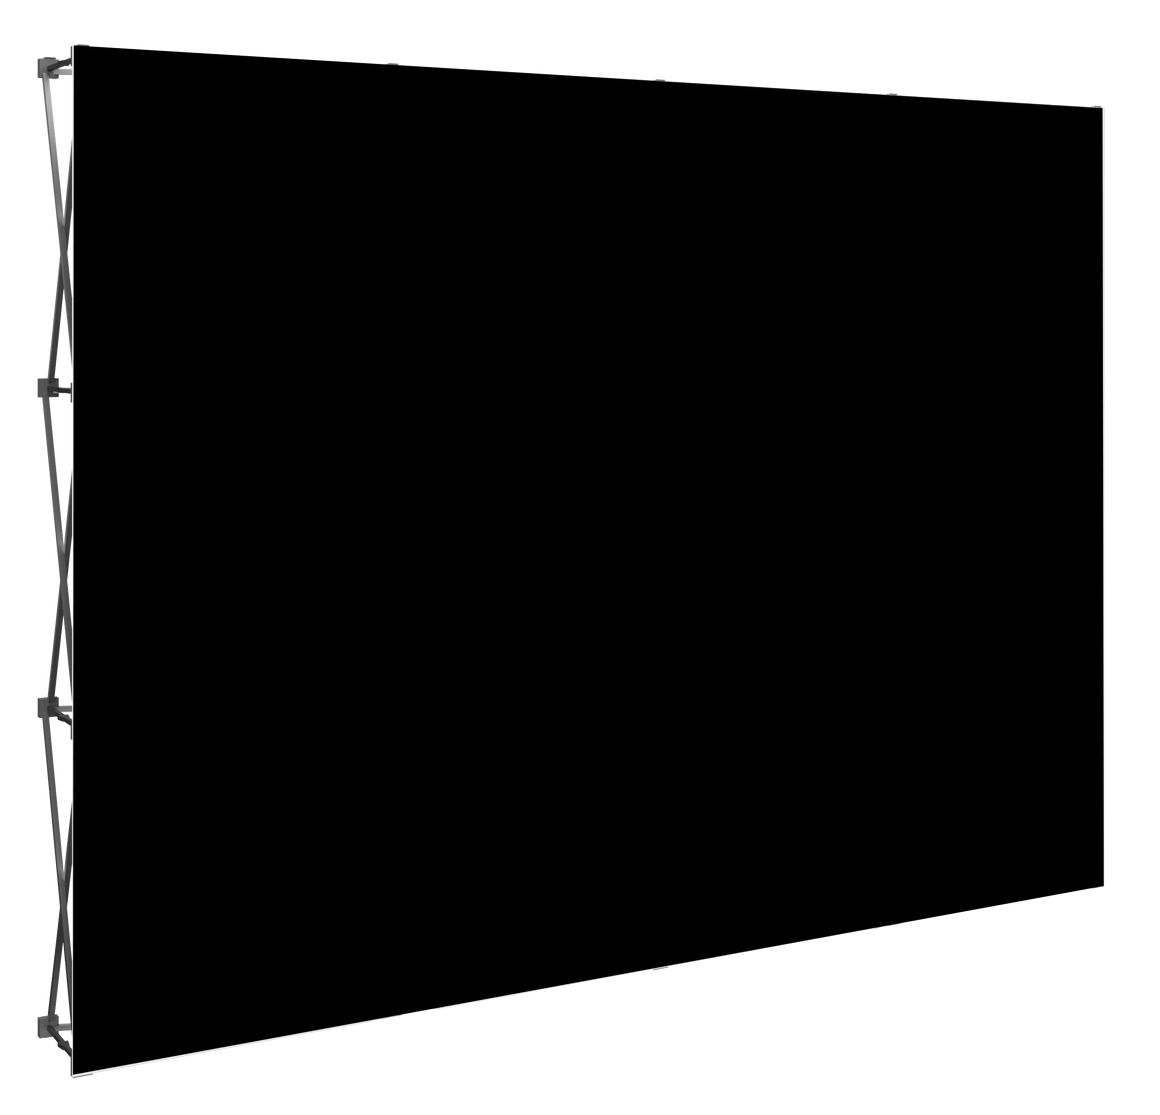 Premium Fabric Backdrop Kit - 8'x8'